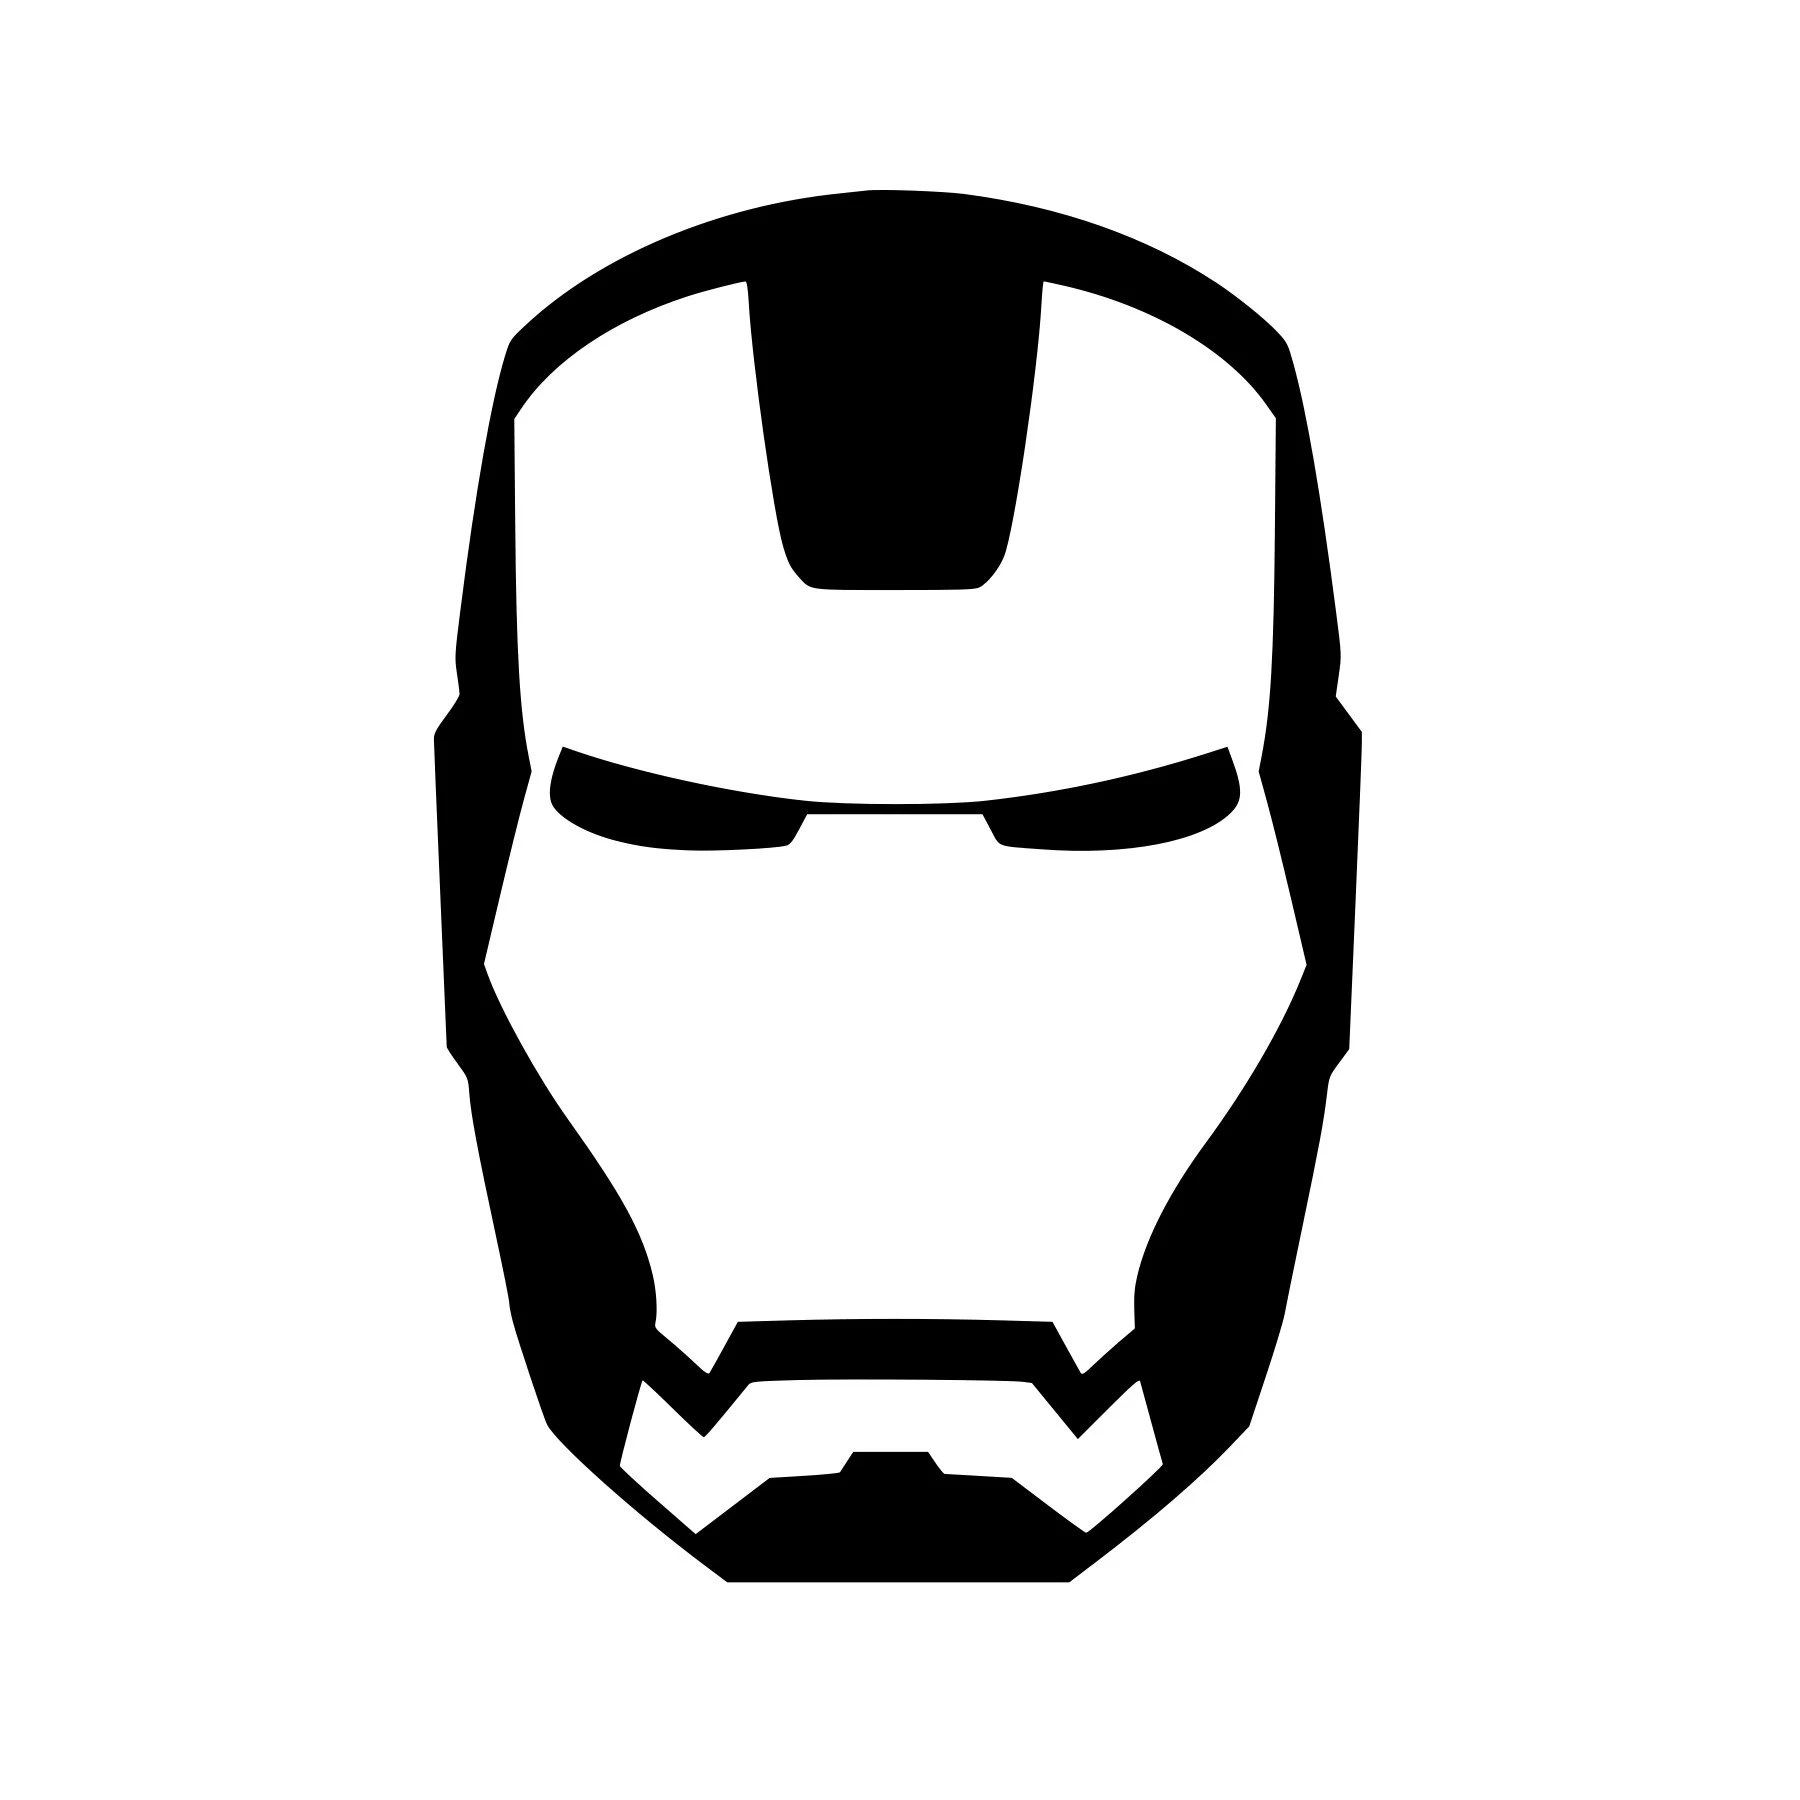 Ironman Face Mask Logo Vinyl Decal Any Color Any Size